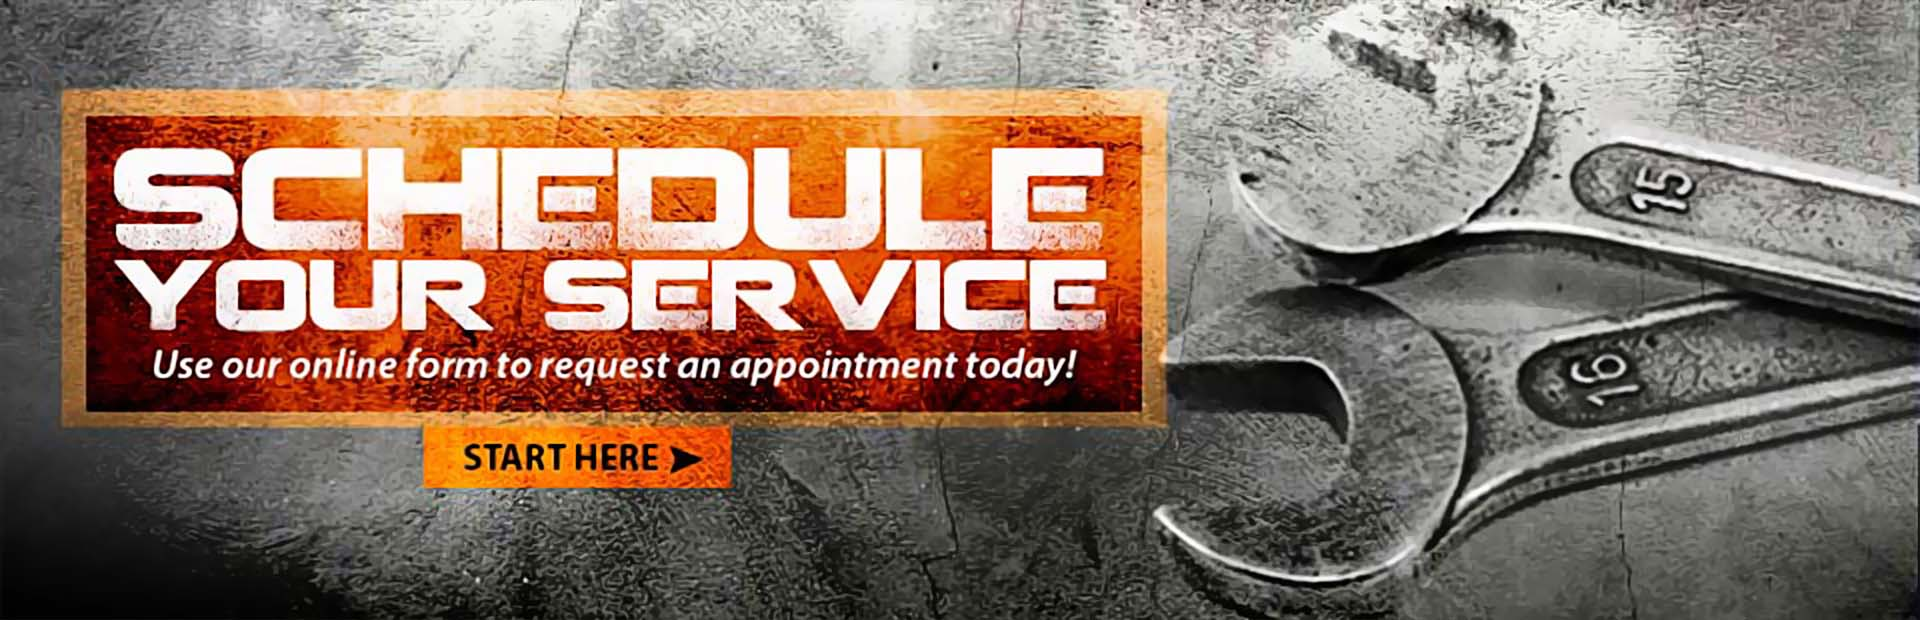 Use our online form to request a service appointment today. Click here to get started.